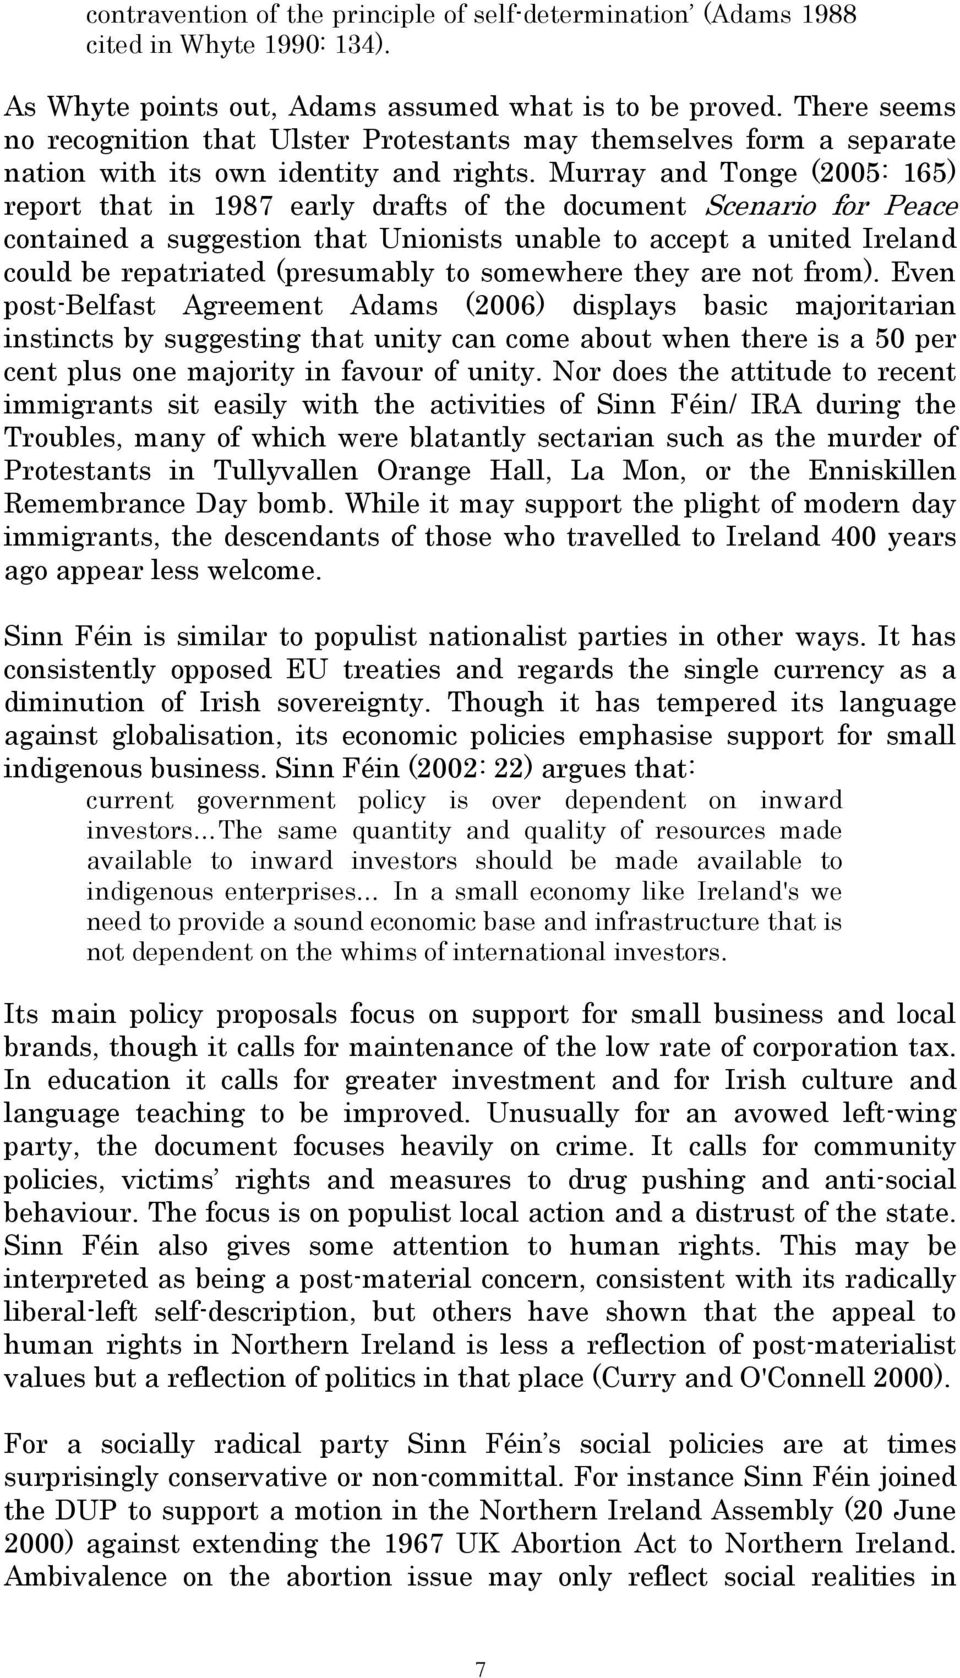 Murray and Tonge (2005: 165) report that in 1987 early drafts of the document Scenario for Peace contained a suggestion that Unionists unable to accept a united Ireland could be repatriated